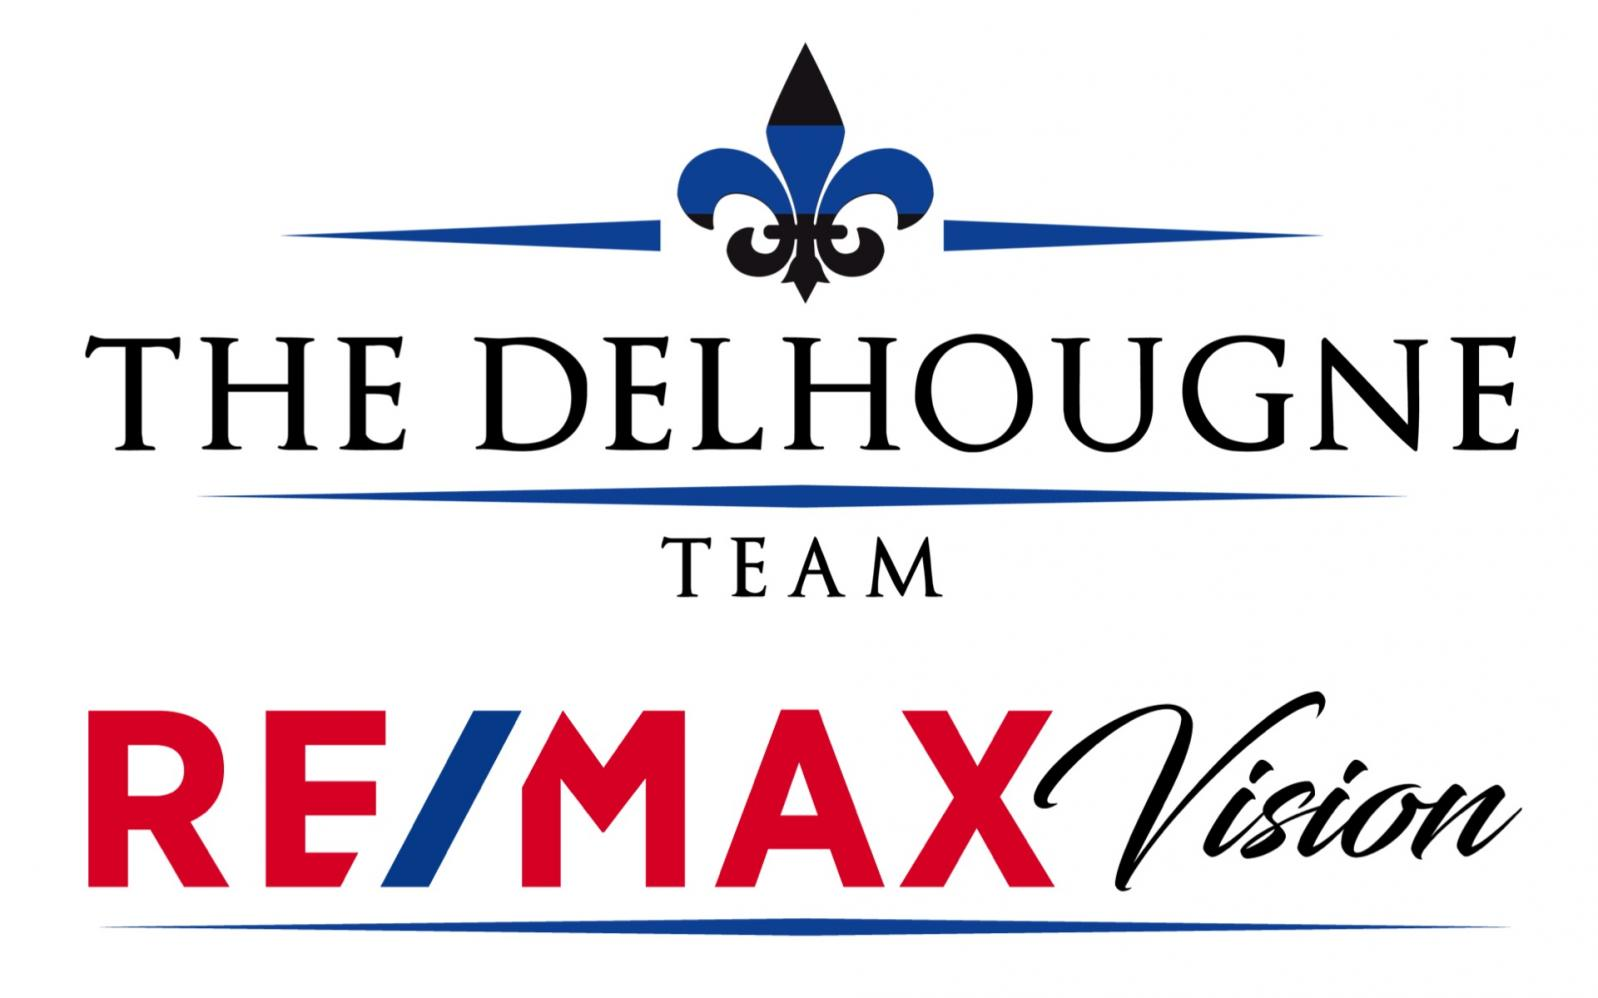 RE/MAX Vision helps more home buyers & sellers than any other team in the area.